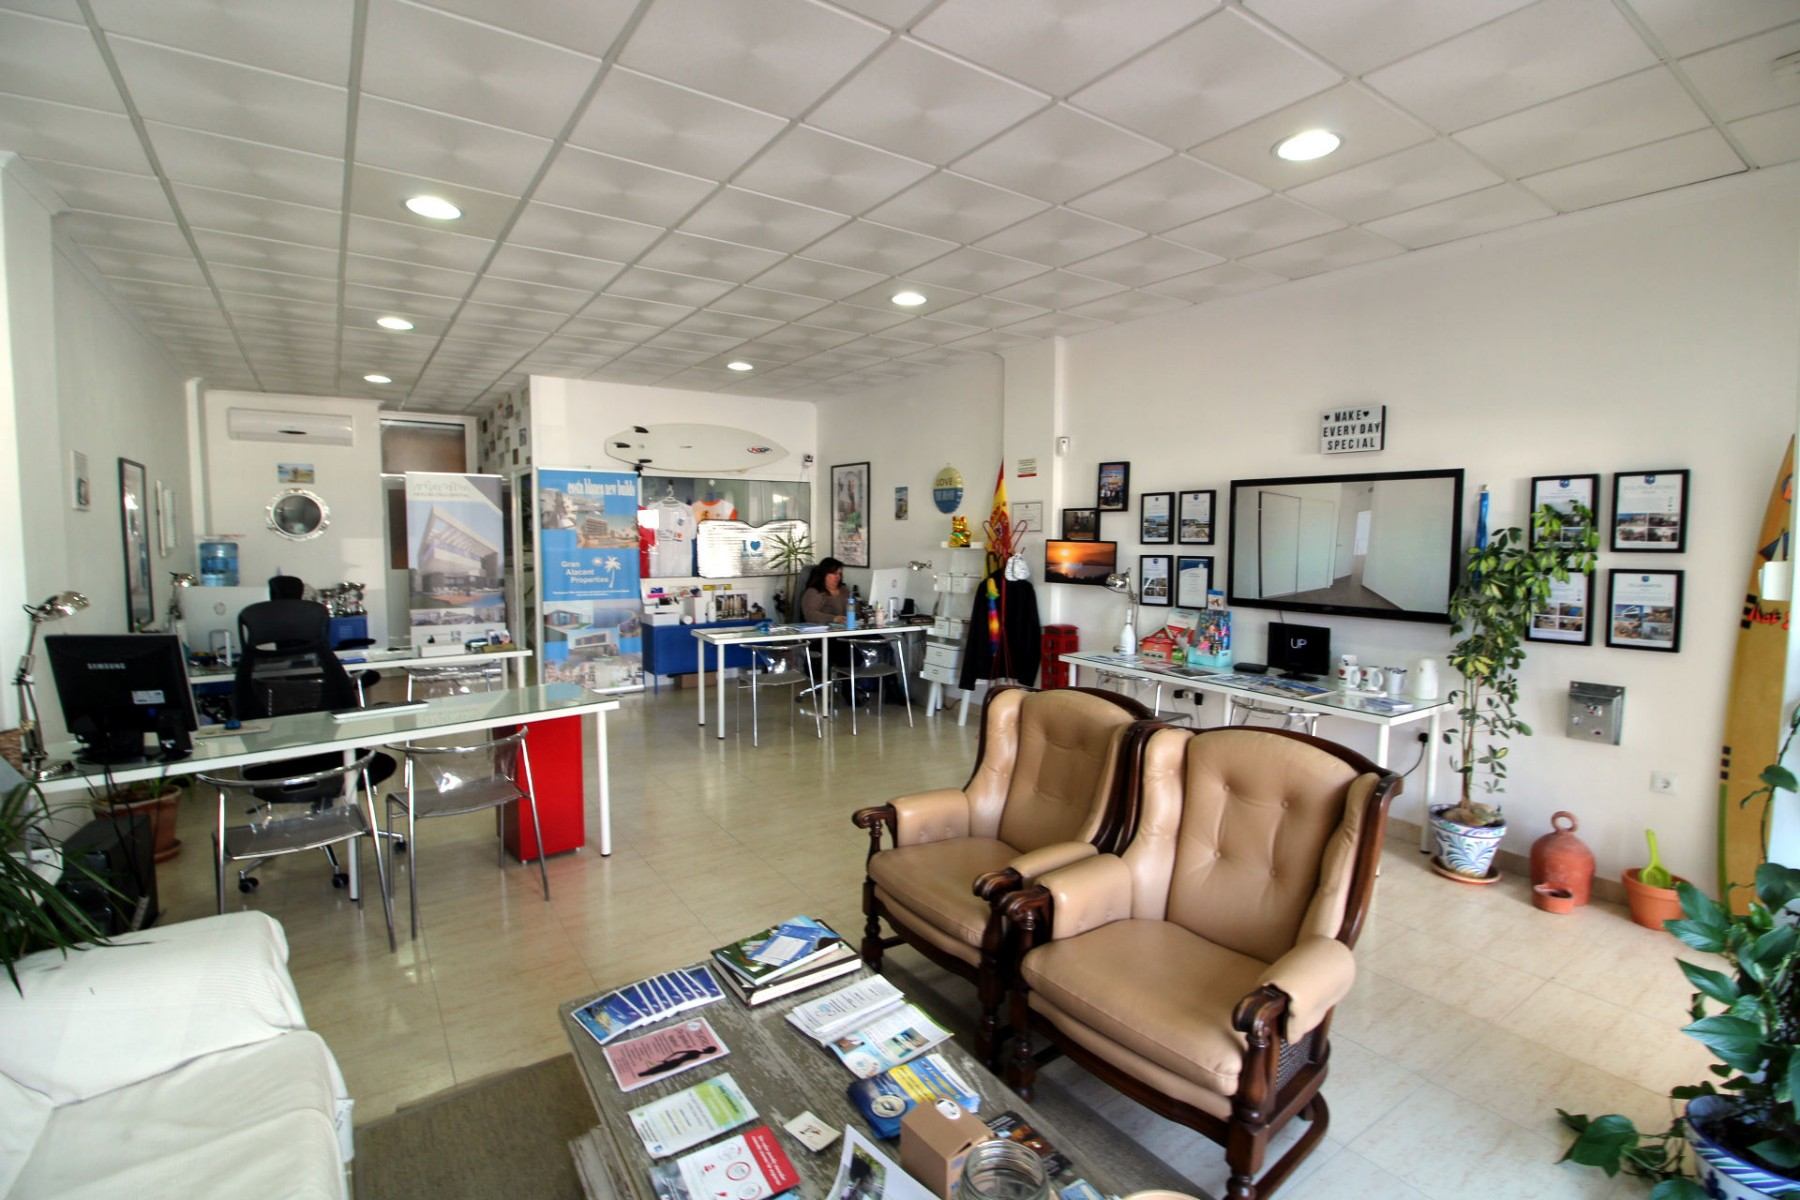 Gran Alacant Properties spacious and open office